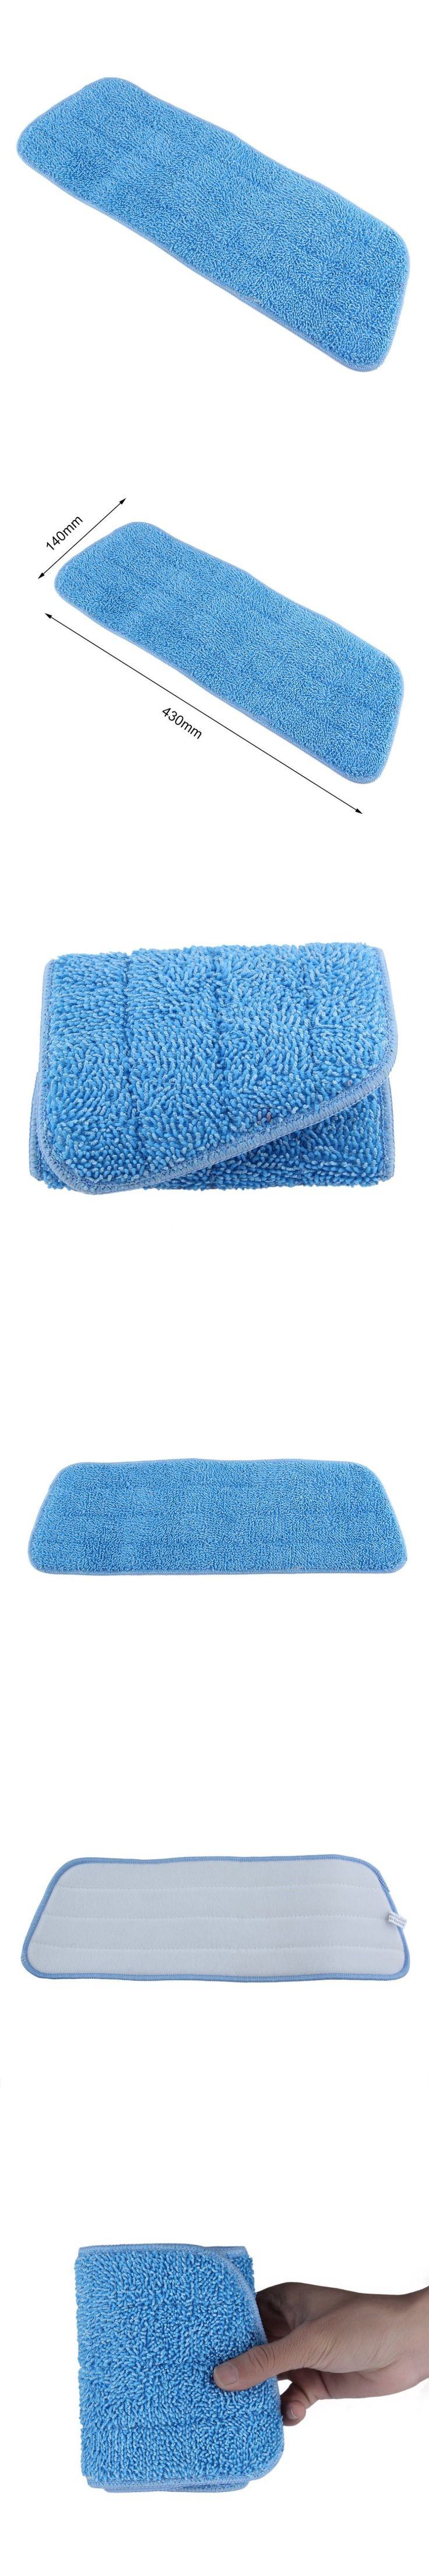 1PC Replacement Microfiber Mop Head Fit Flat Spray Mops Washable Household Cleaning Tool House Floor Dust Mop Cover